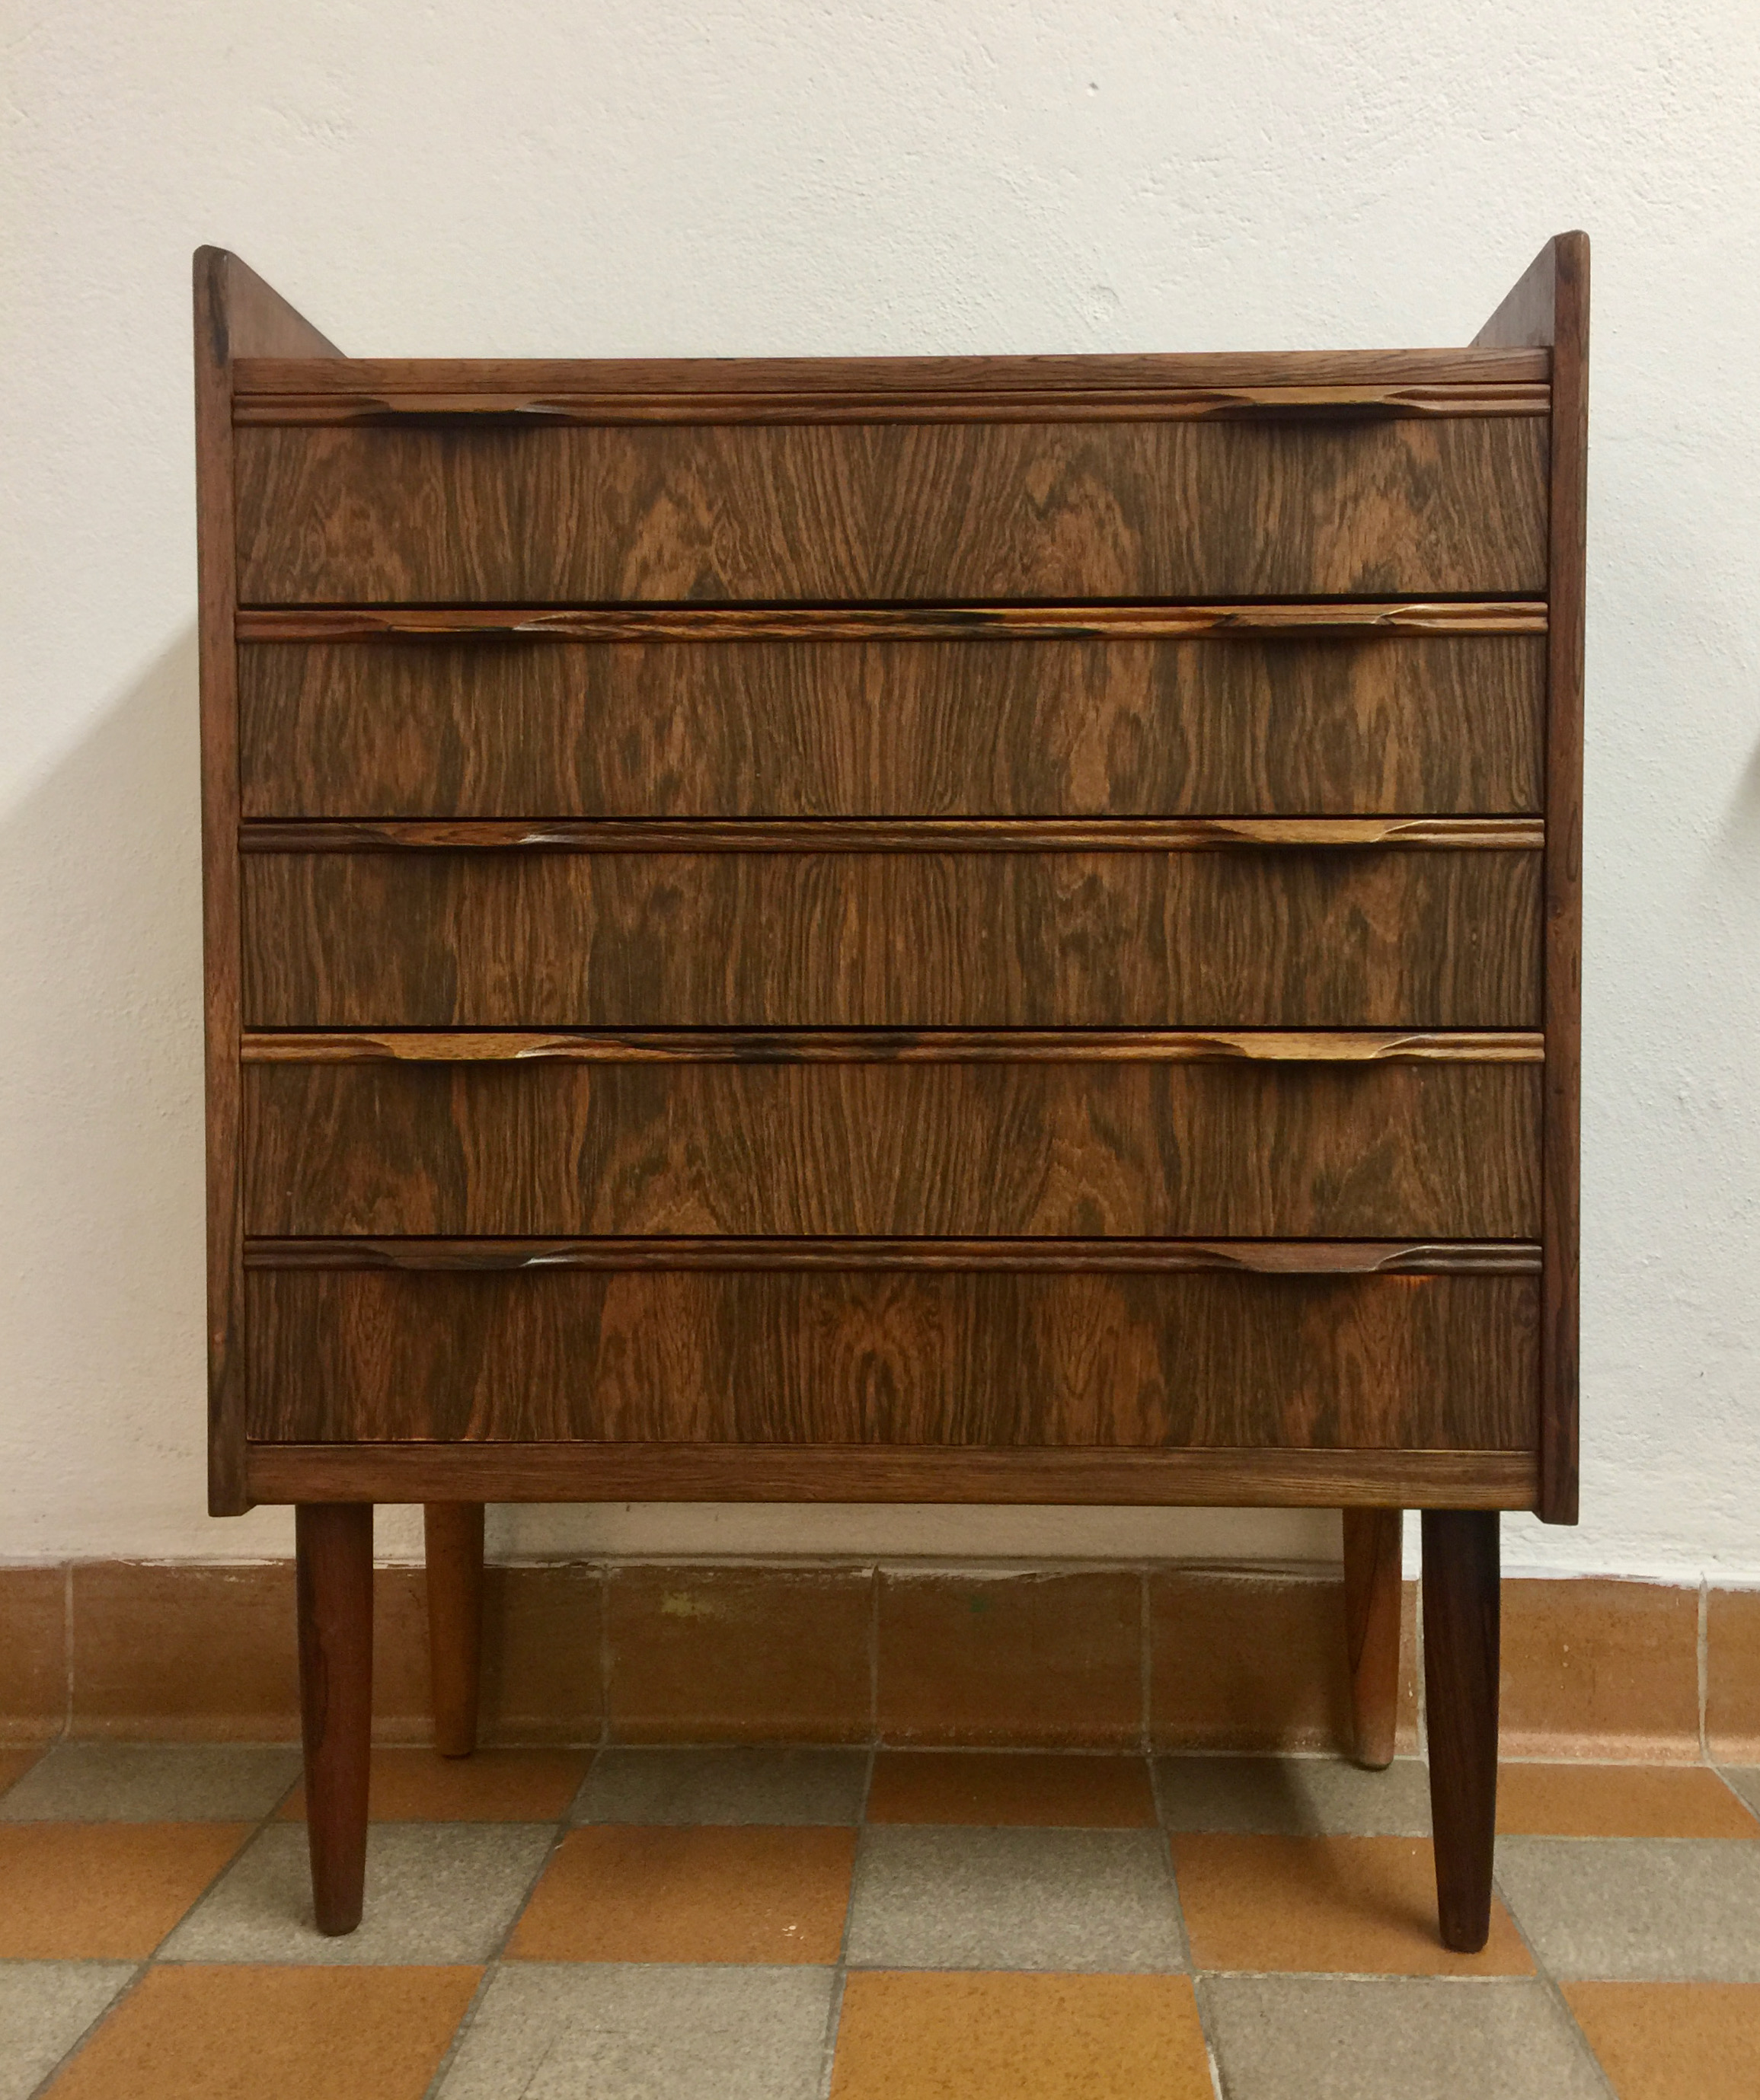 Chest of drawers, Denmark, jacaranda